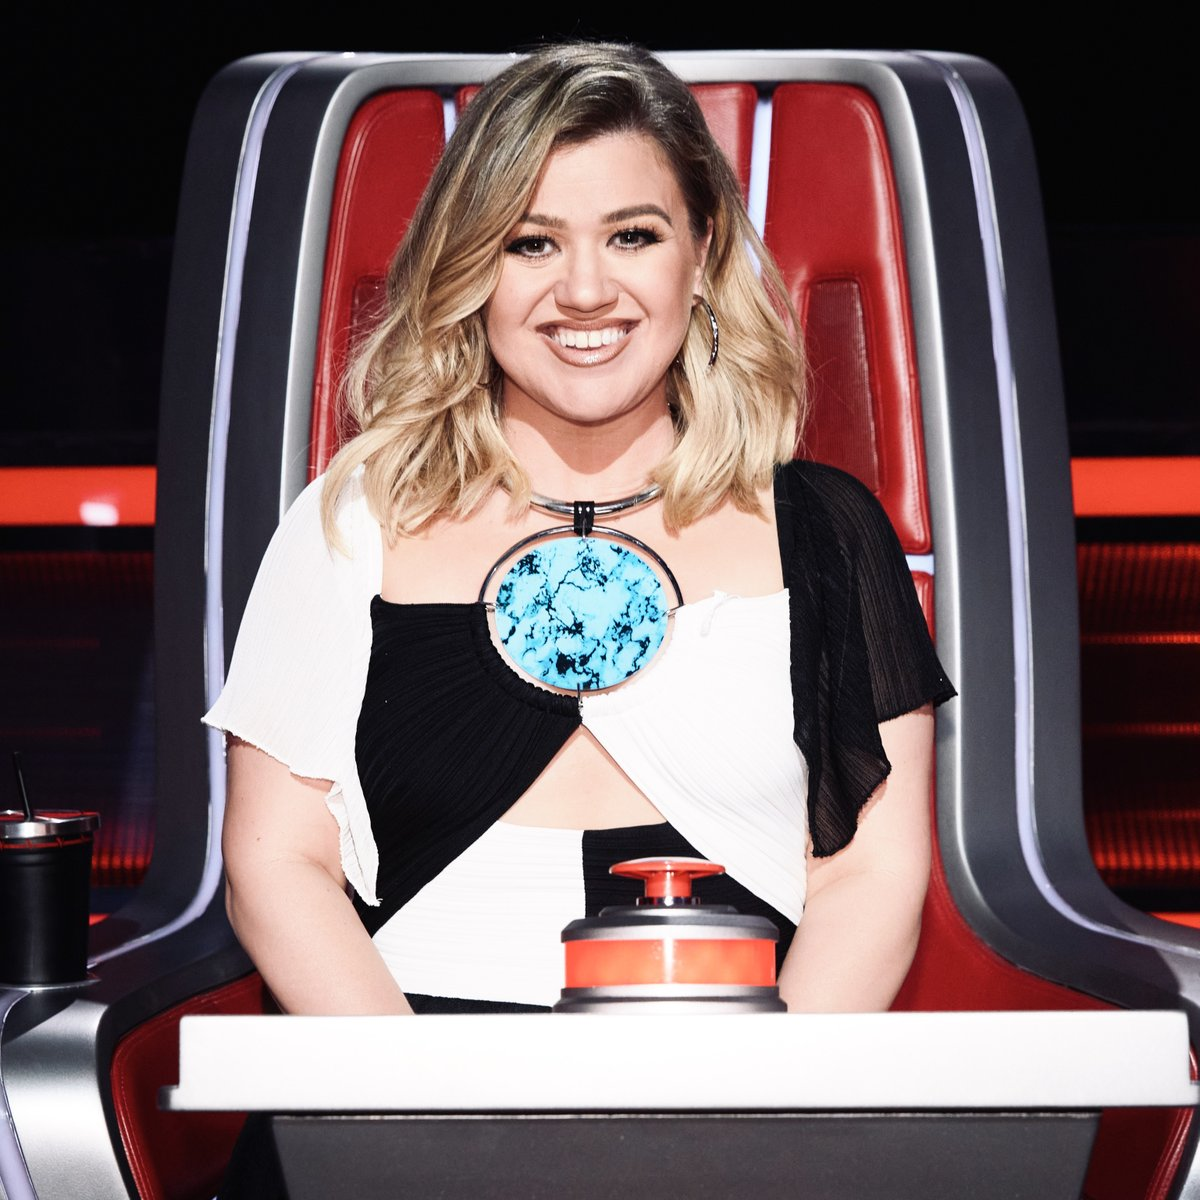 It's knockouts time! Let's do this!!! #TeamKelly #TheVoice